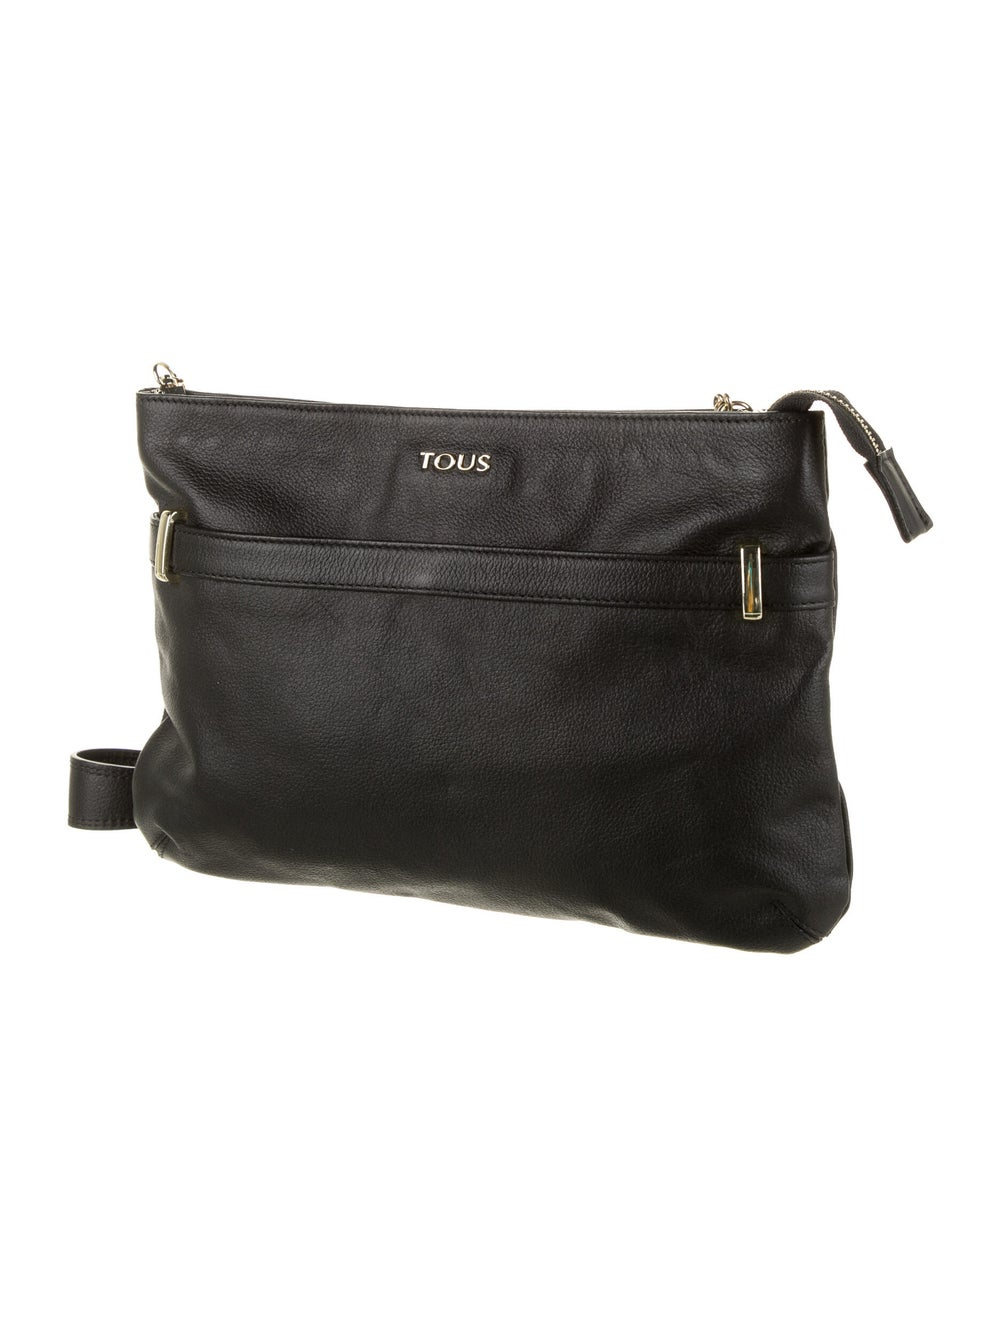 Tous Leather Crossbody Bag Black - image 3